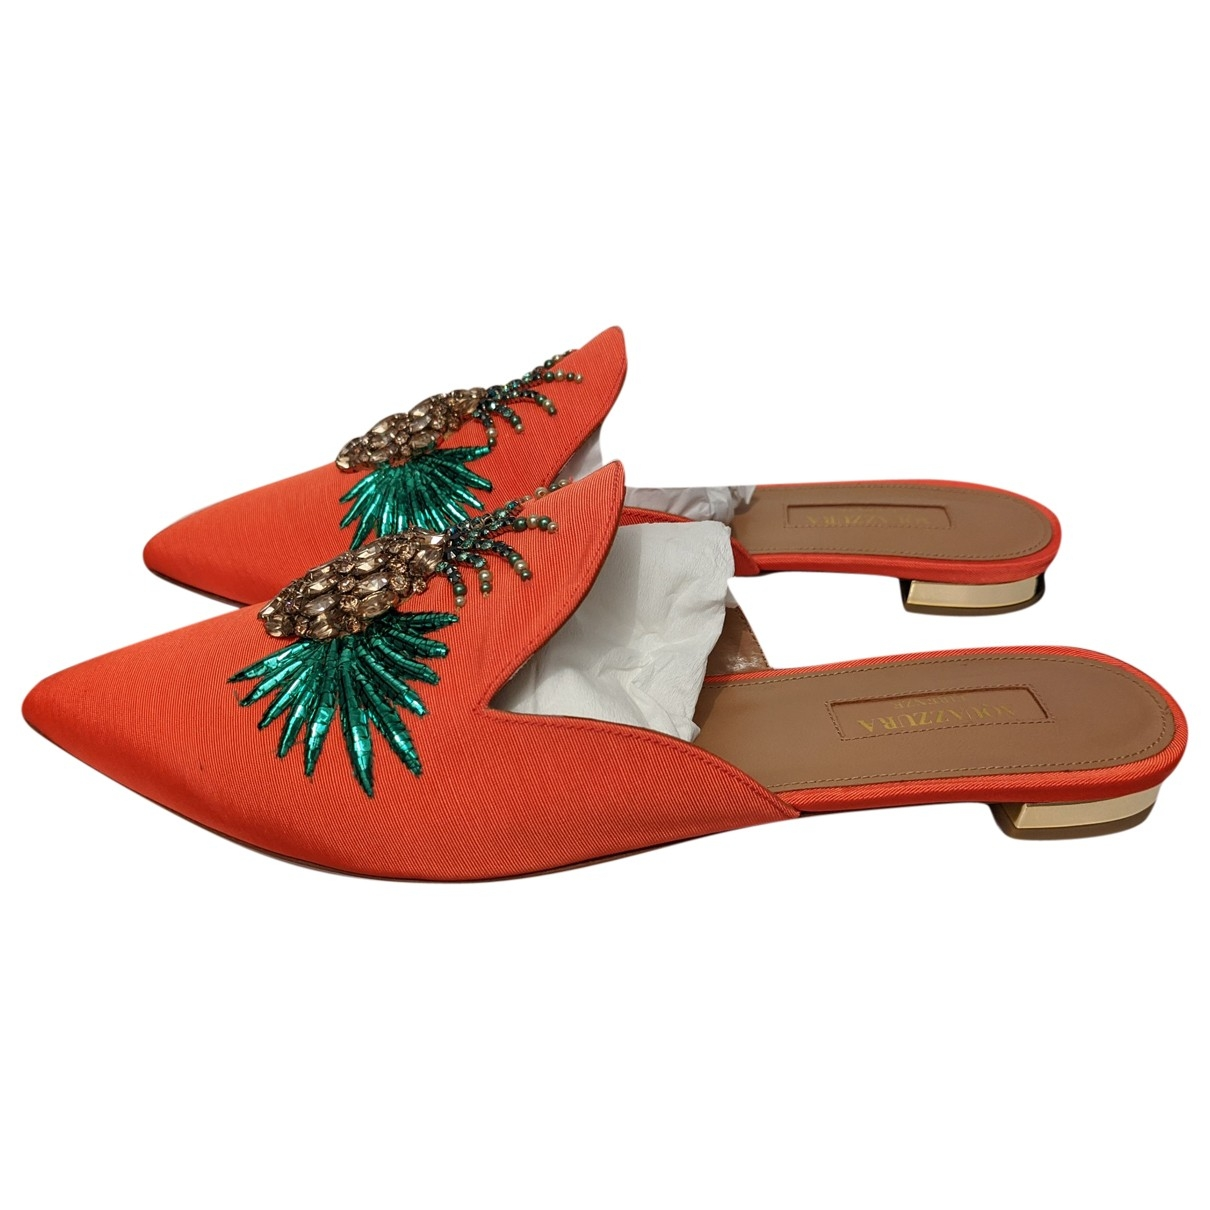 Aquazzura - Sandales Powder Puff pour femme en toile - orange